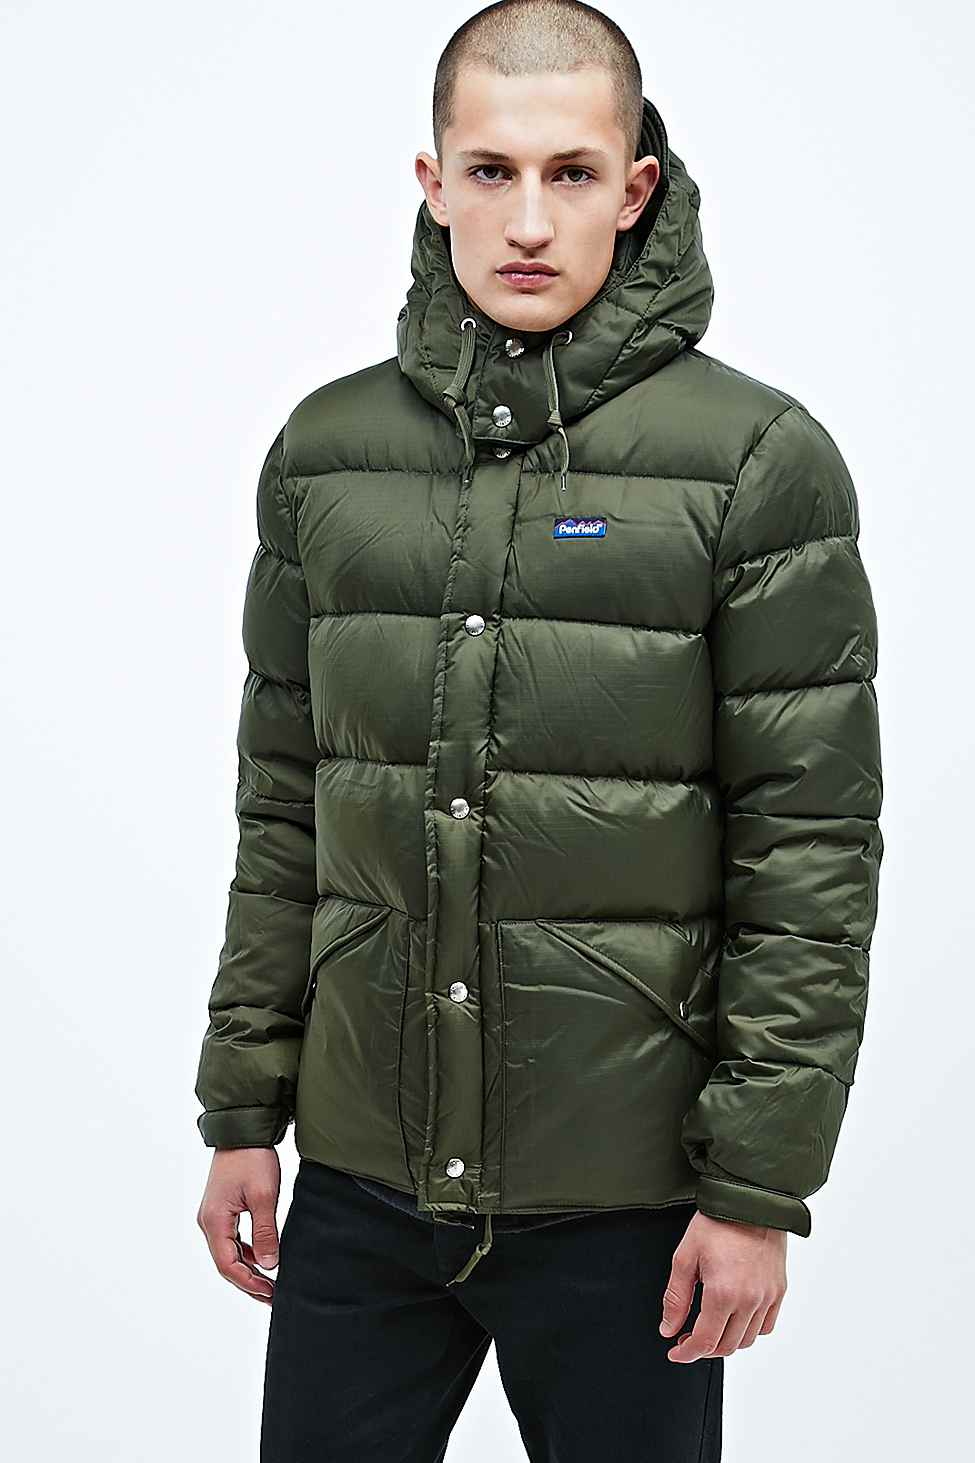 df147c386 Penfield Bowerbridge Down Jacket in Olive Green for men